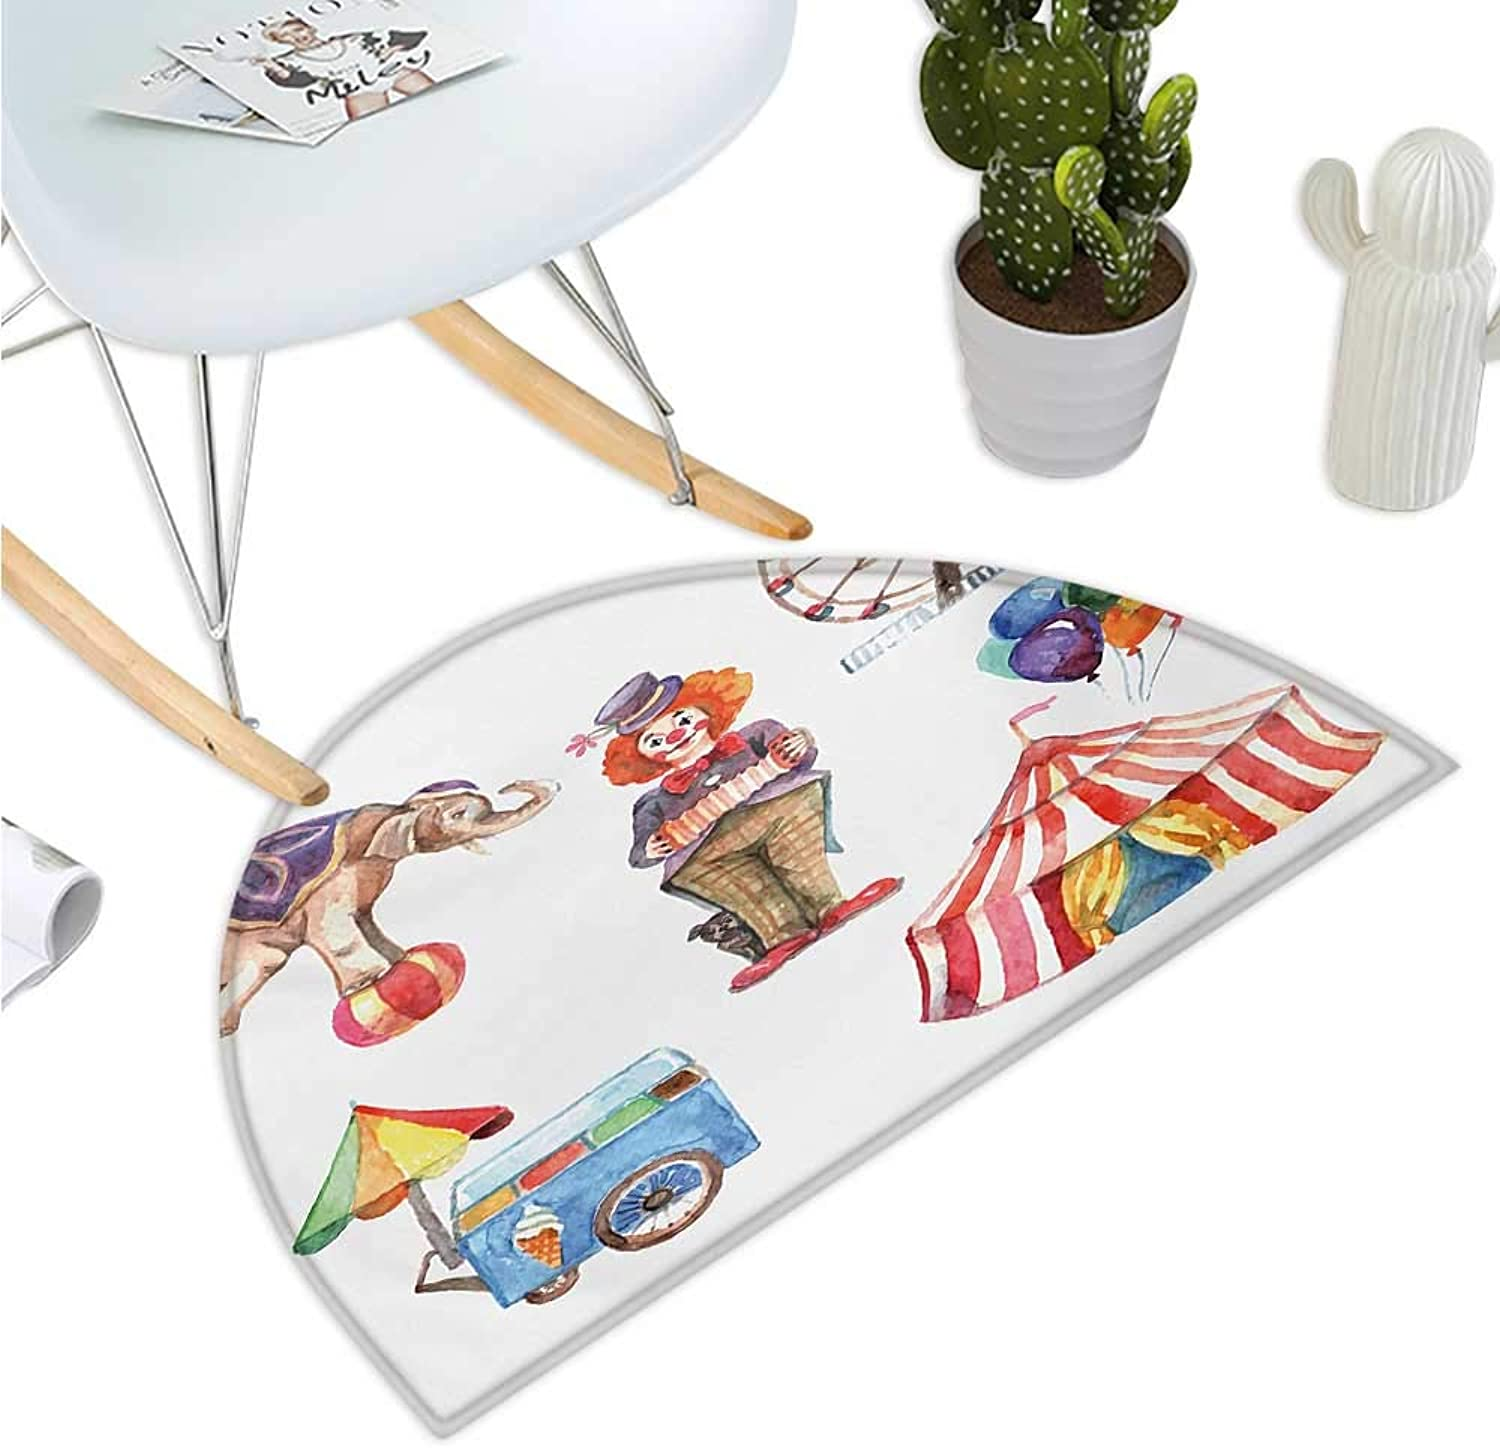 Circus Semicircular Cushion Circus Elements with Clown Elephant Balloons Ice Cream Cart Watercolor Illustration Entry Door Mat H 43.3  xD 64.9  Multicolor